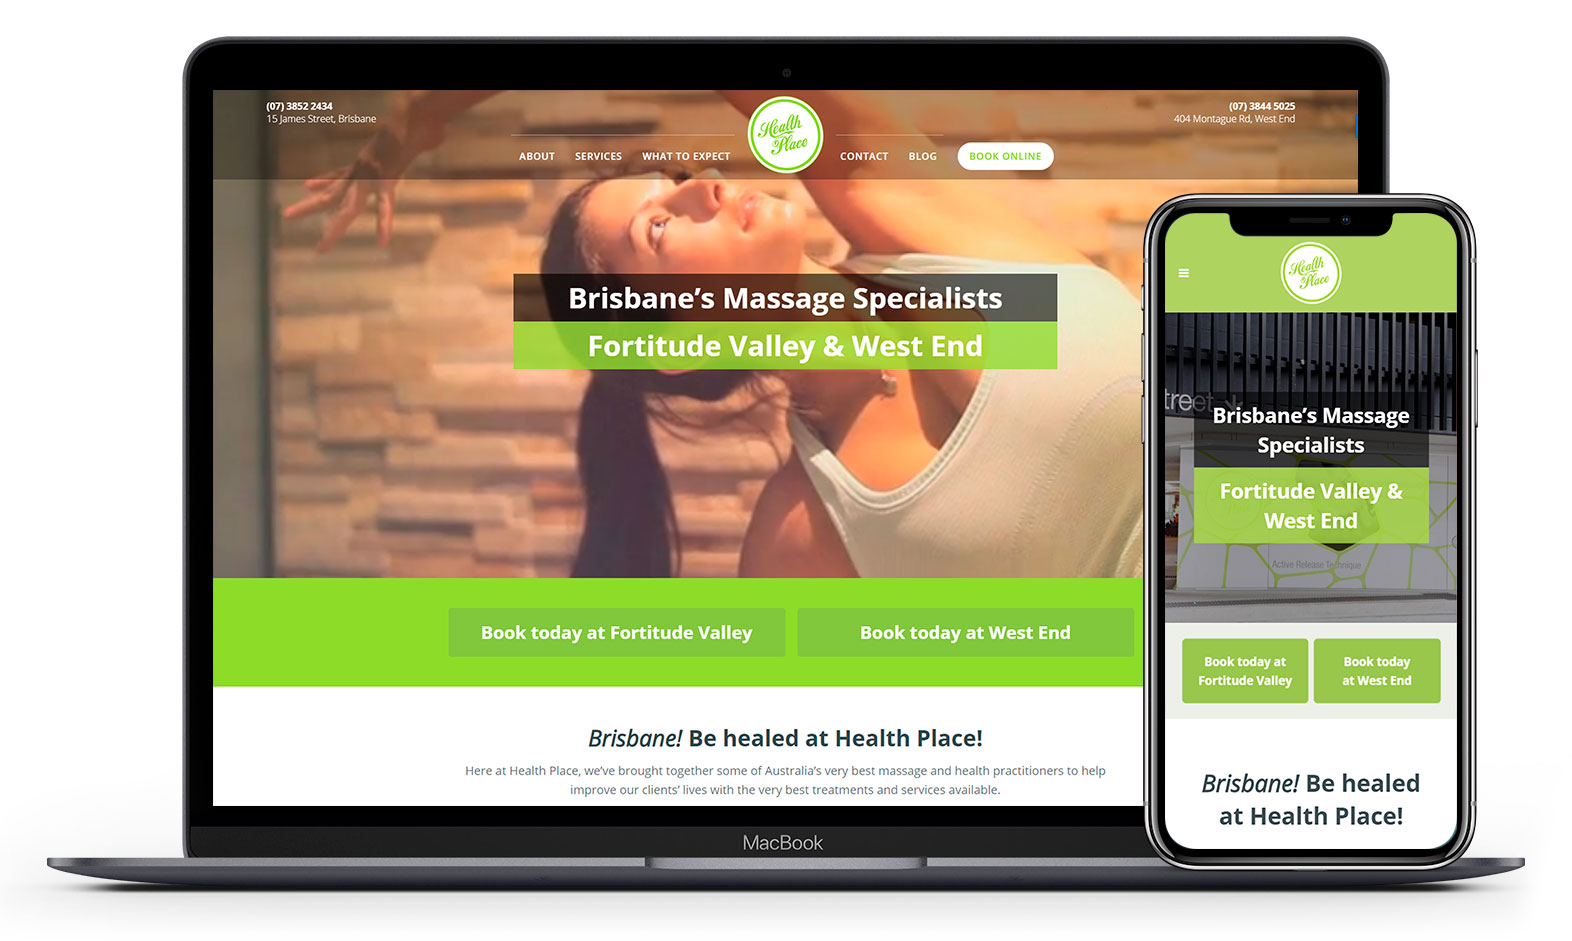 Health Place's website design displayed responsive devices